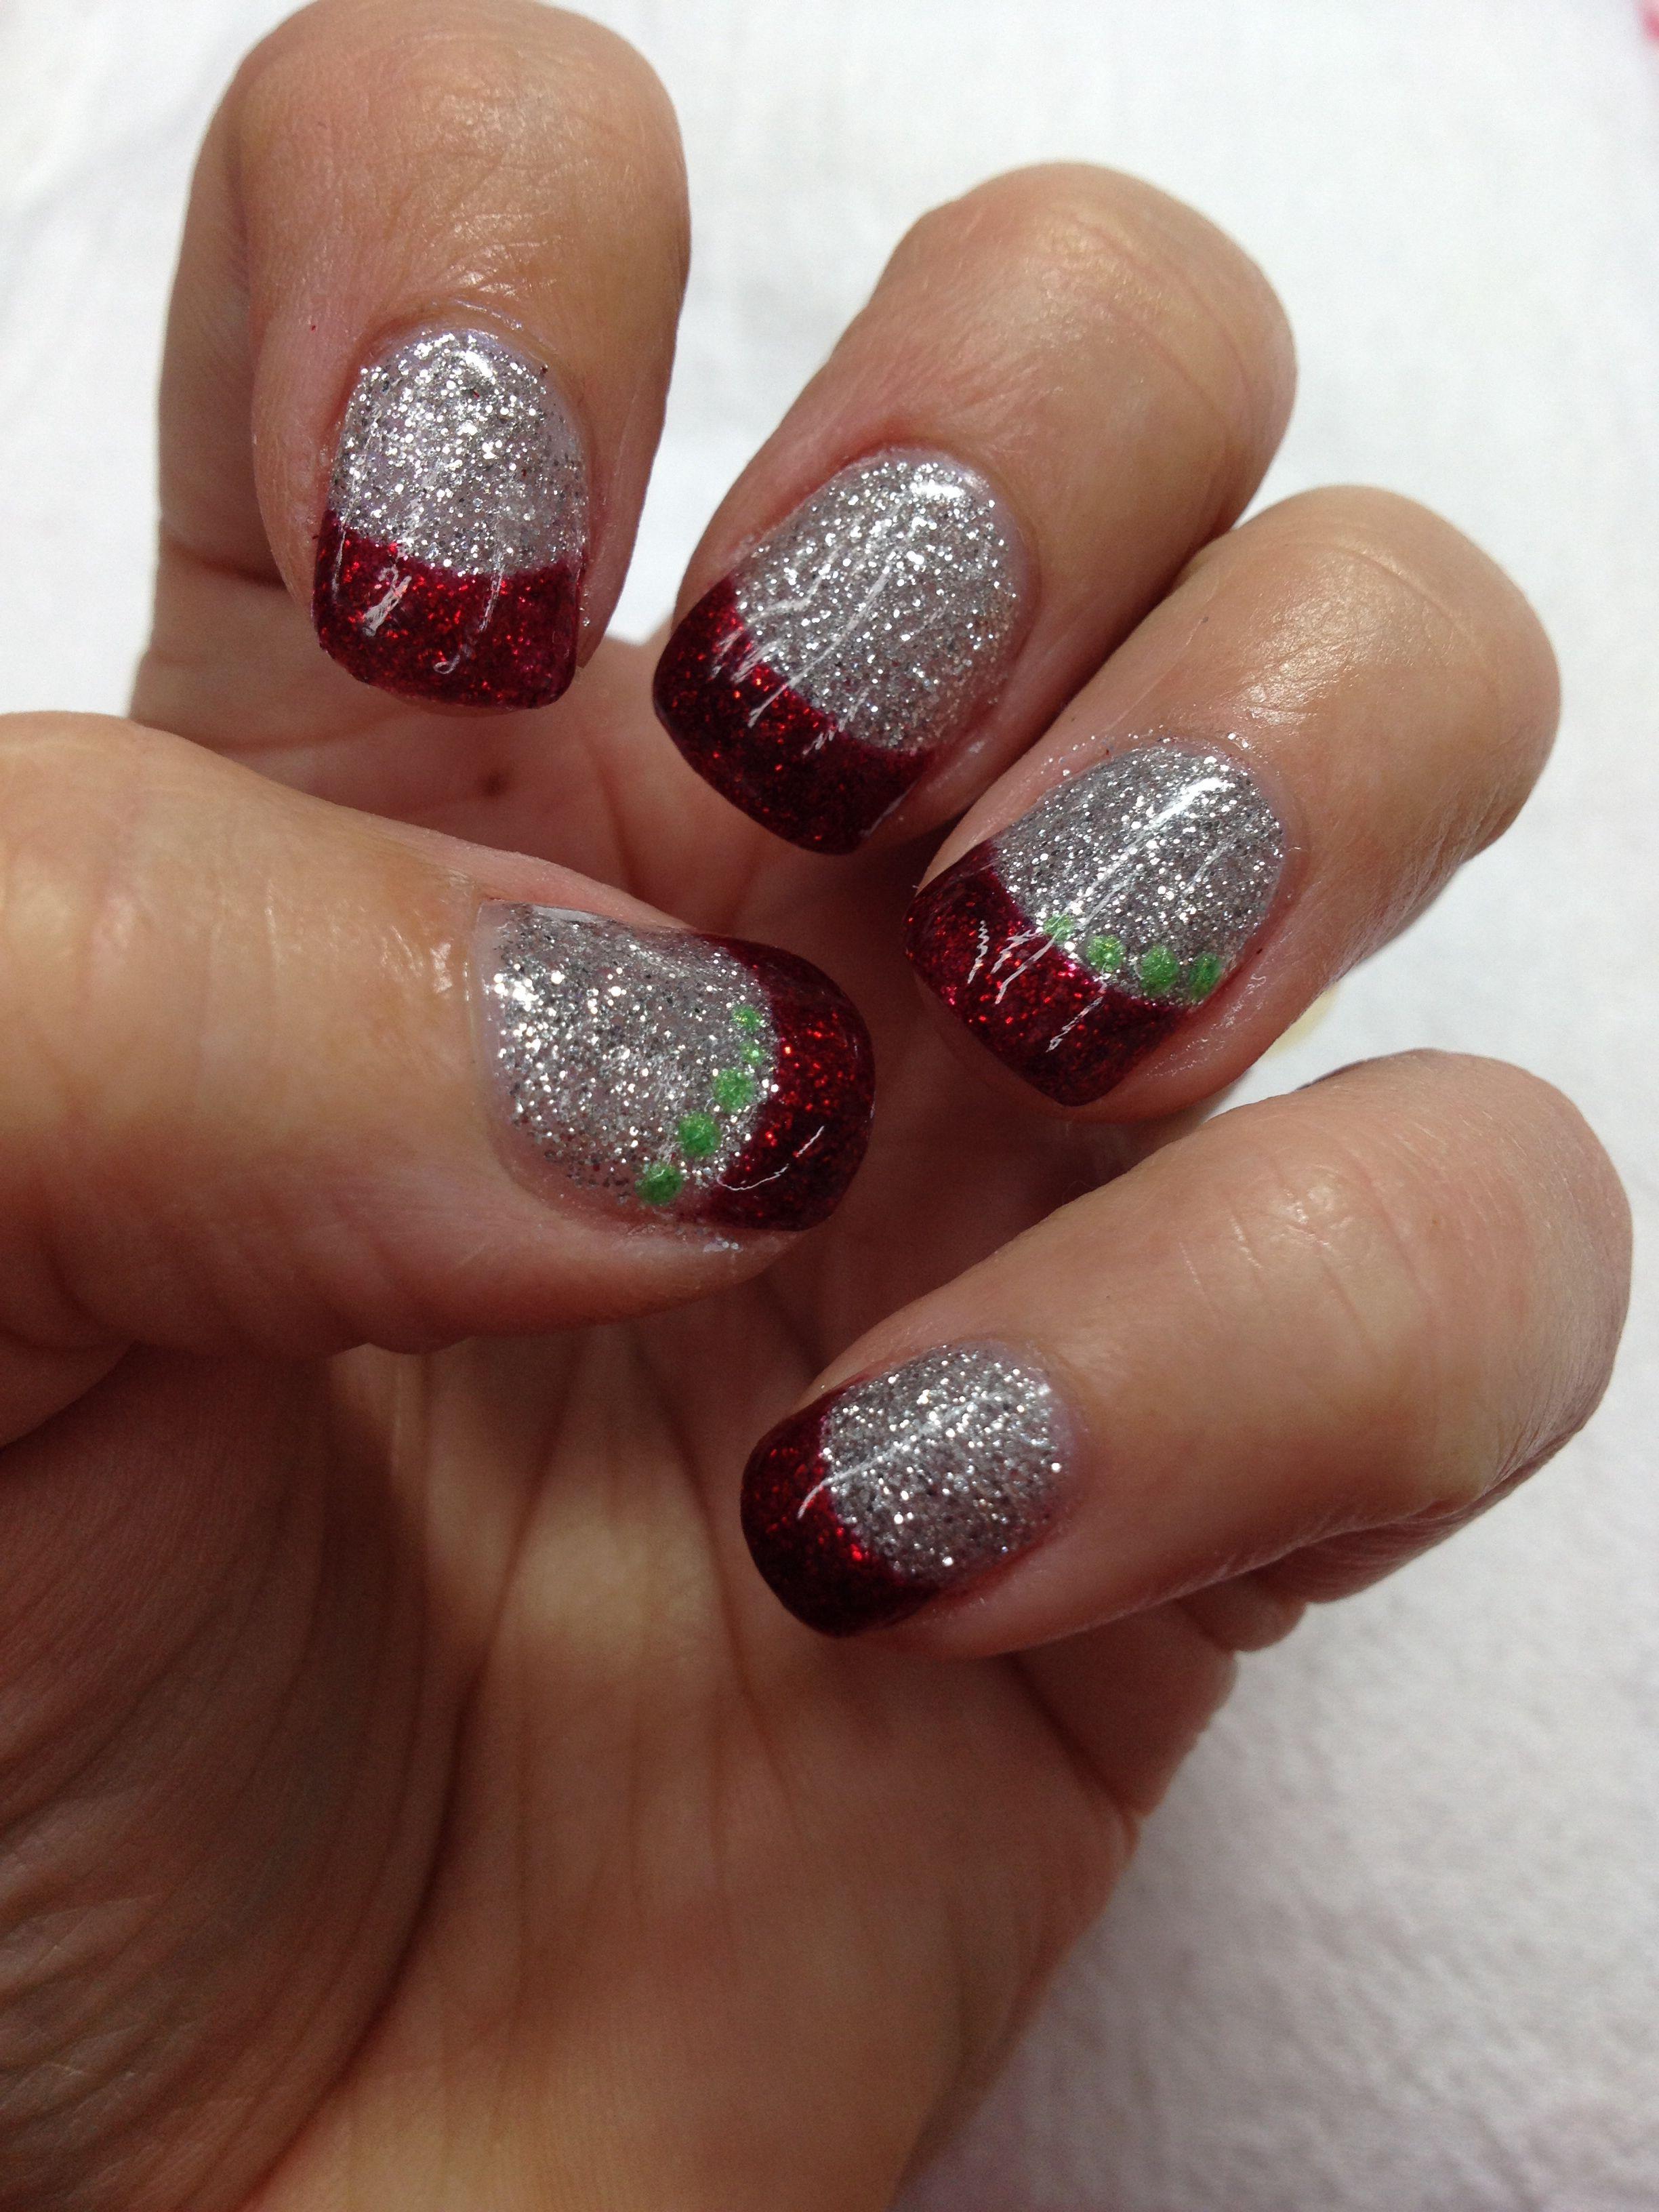 Sparkled holiday Christmas nails!! All blinged out in silver and red ...